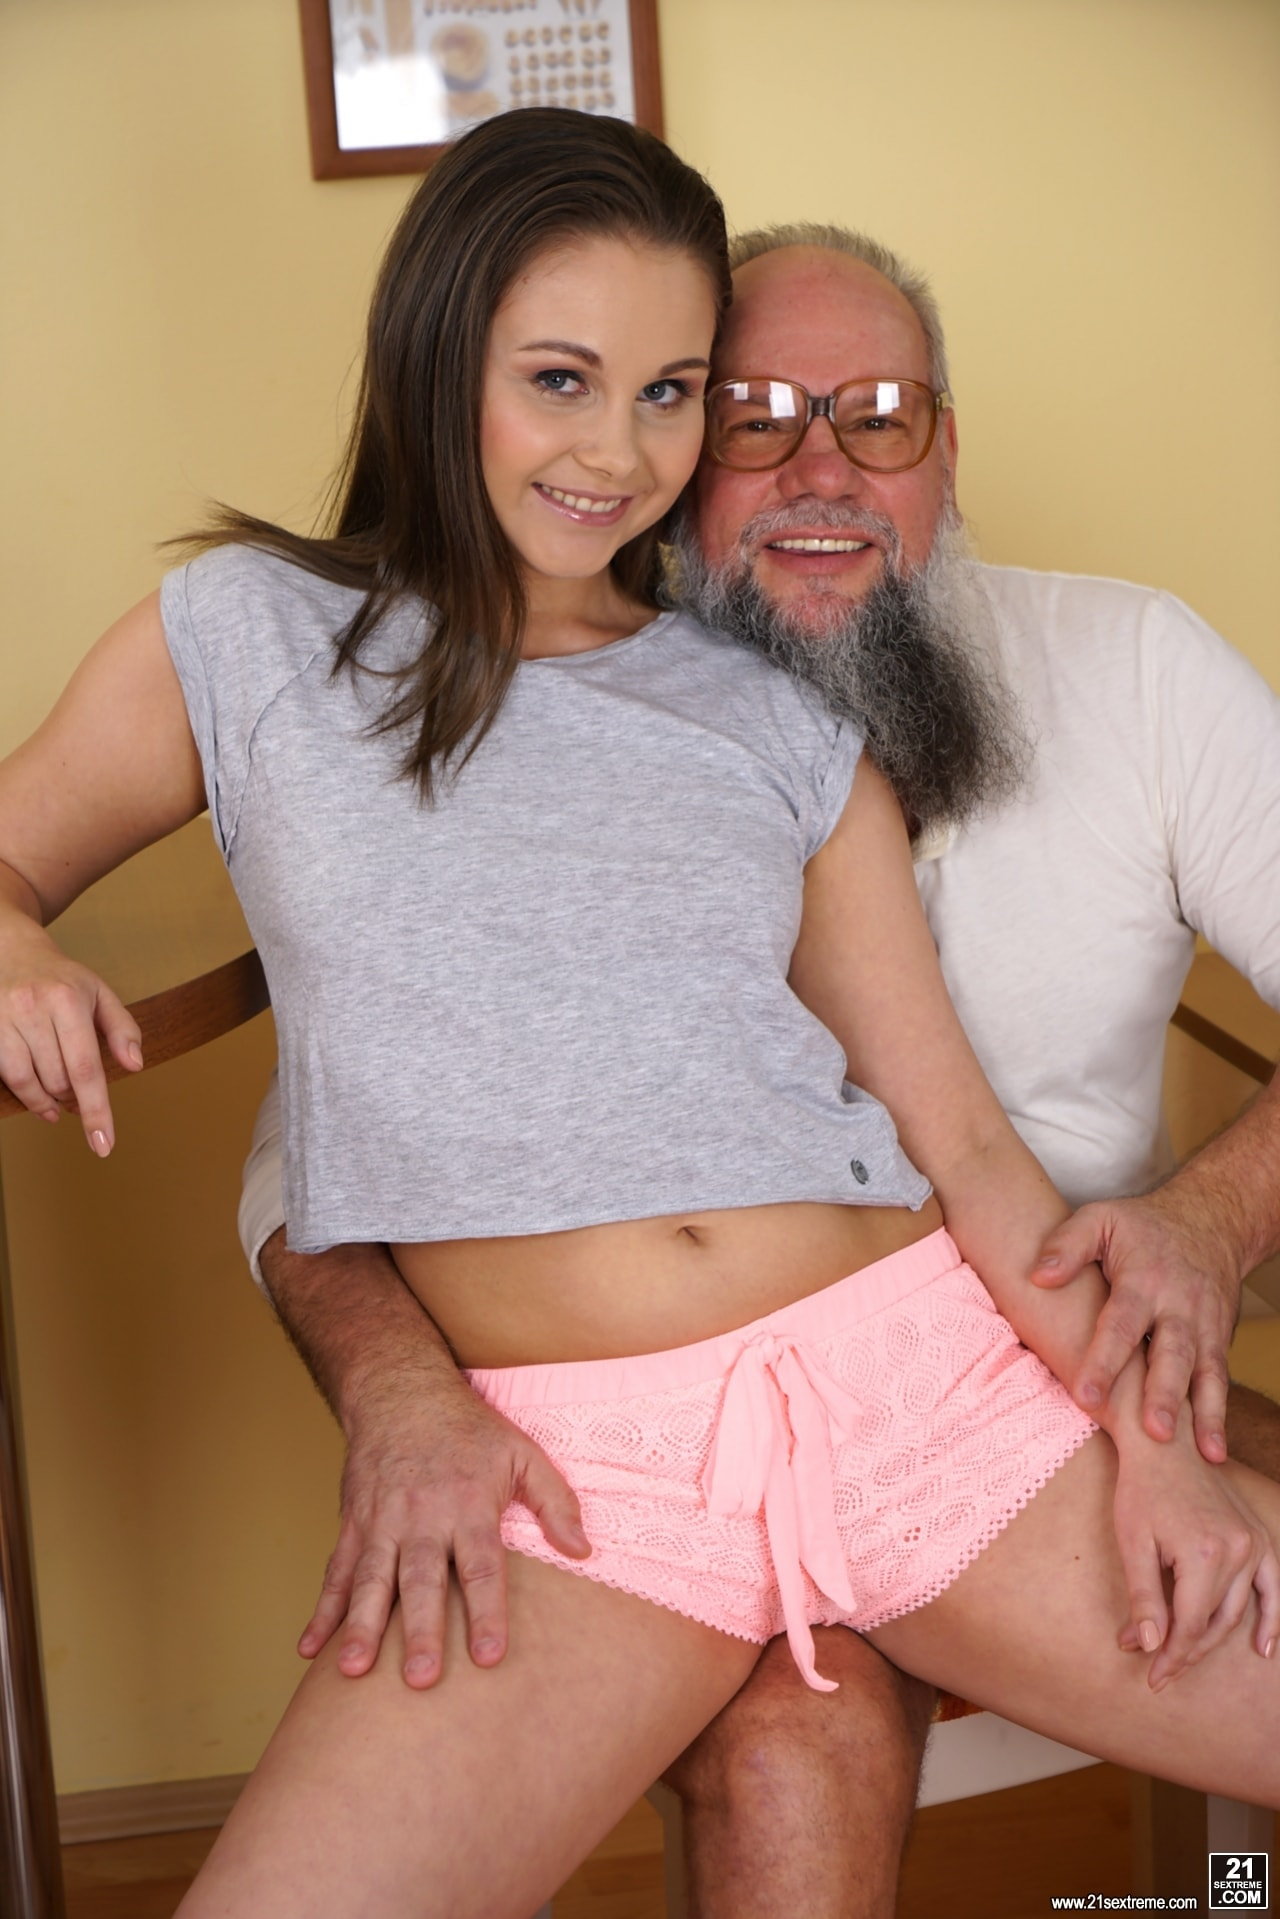 21Sextury 'Tasting A Young Woman' starring Liza Shay (Photo 13)